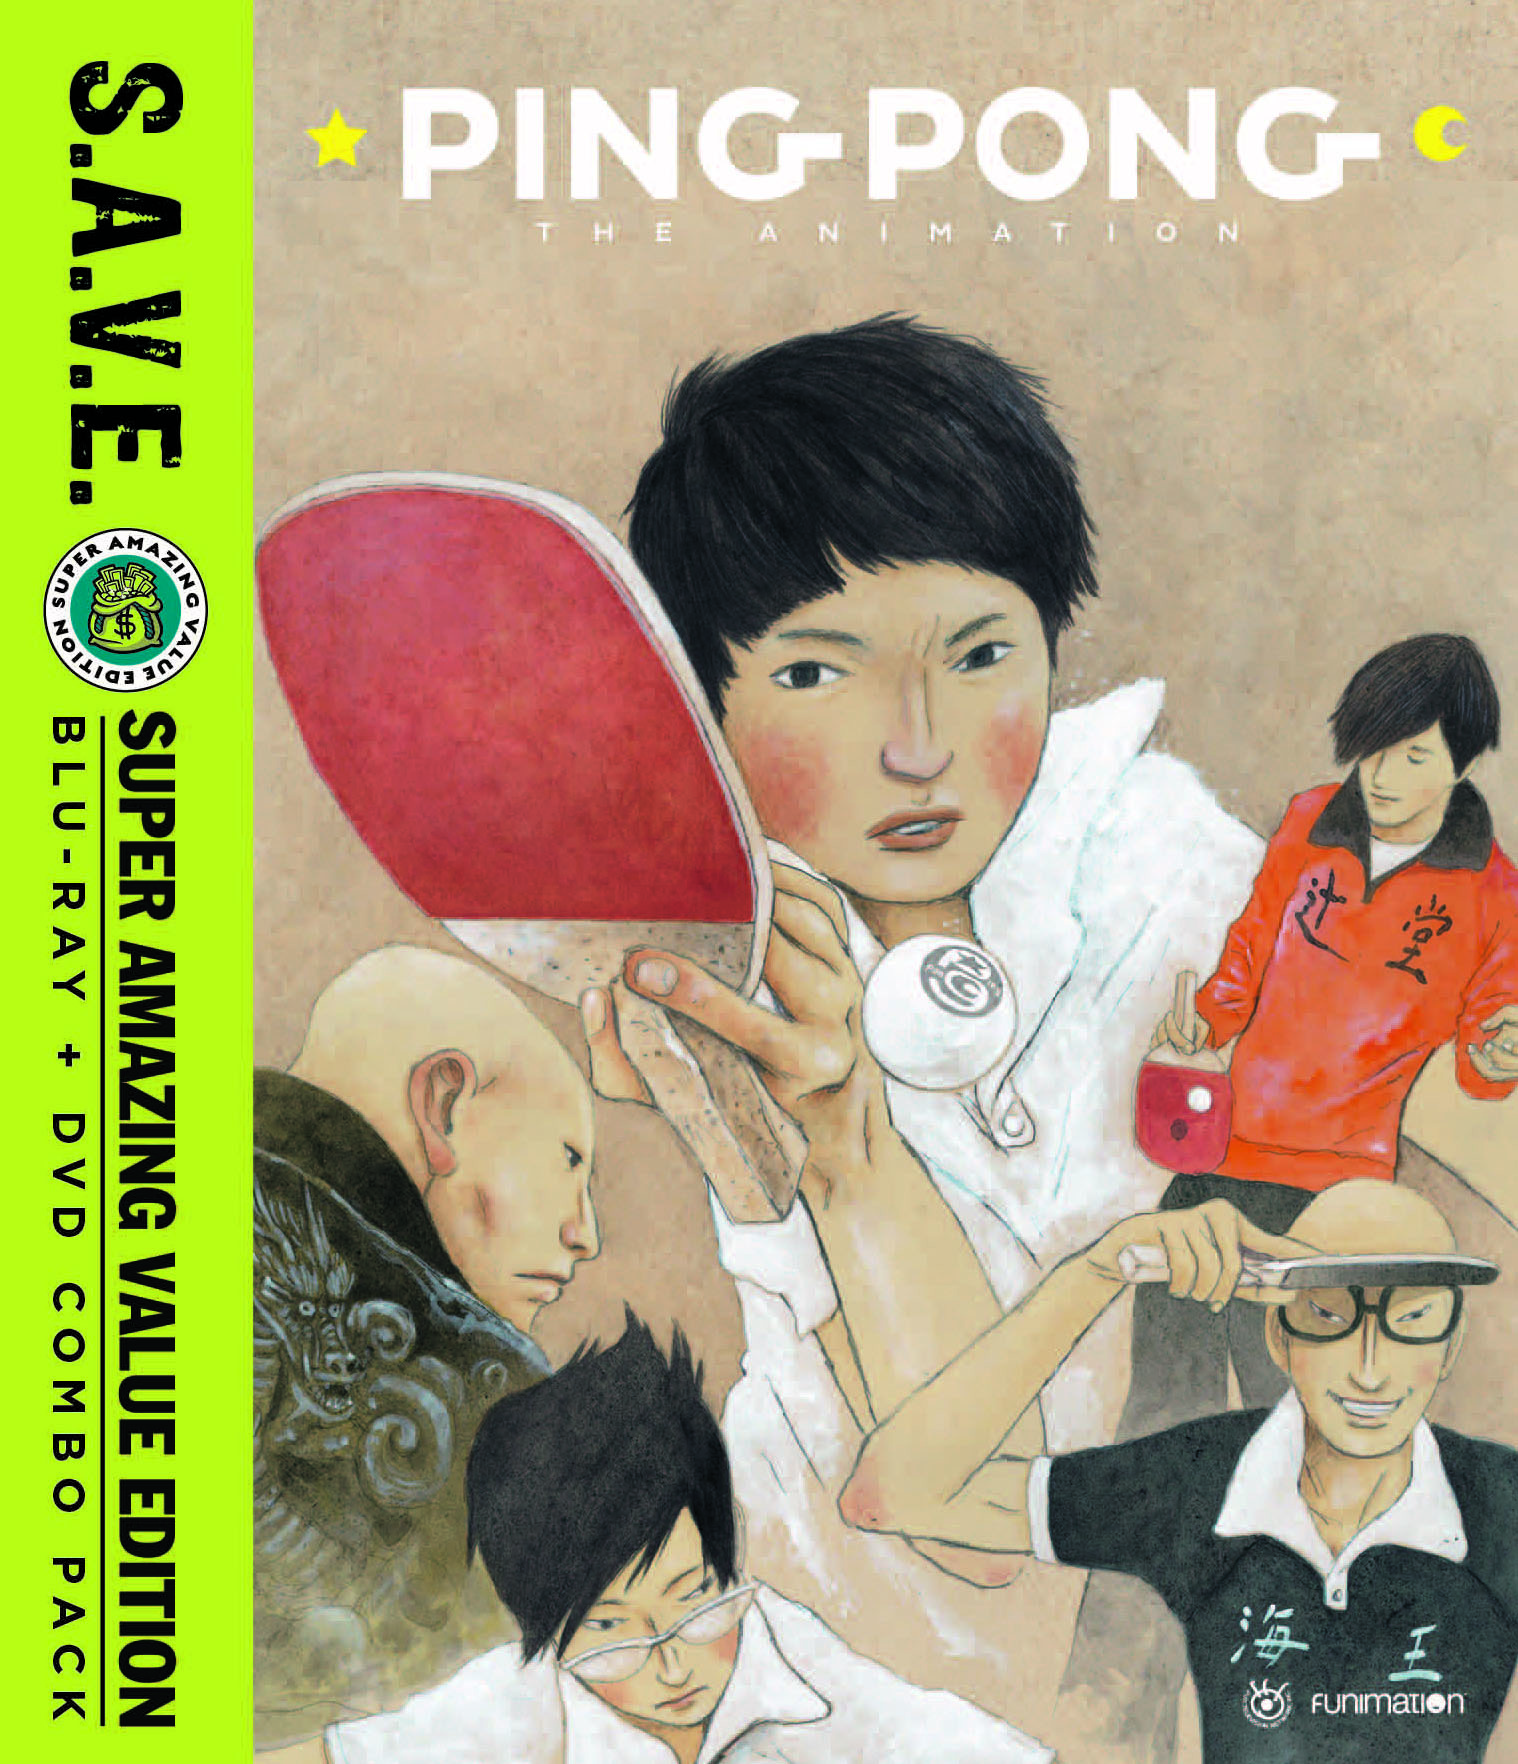 Ping Pong Blu-ray/DVD SAVE Edition 704400093128